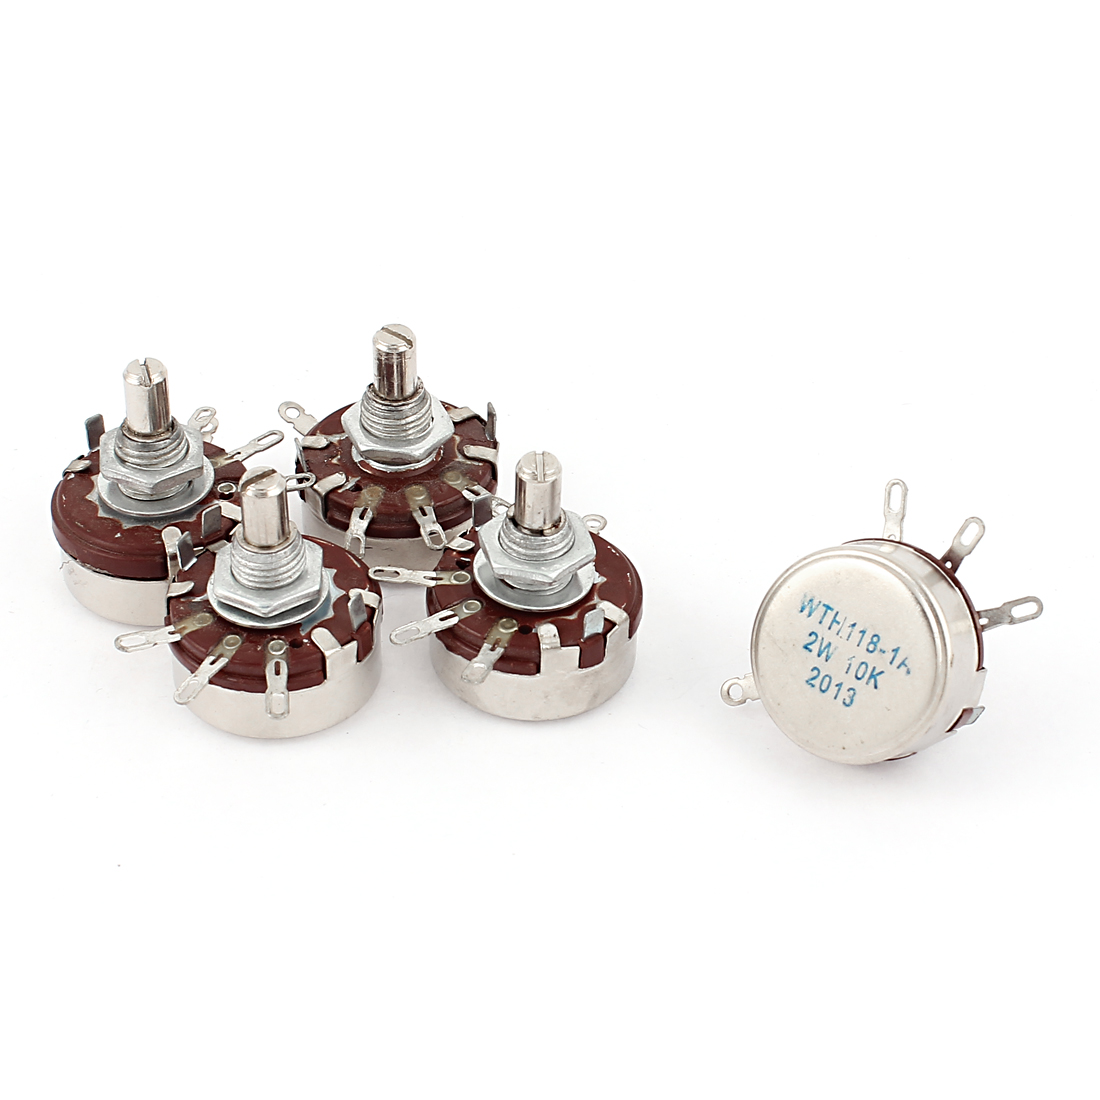 WTH118-1A 2W 10K Ohm Rotary Taper Carbon Potentiometer 5Pcs